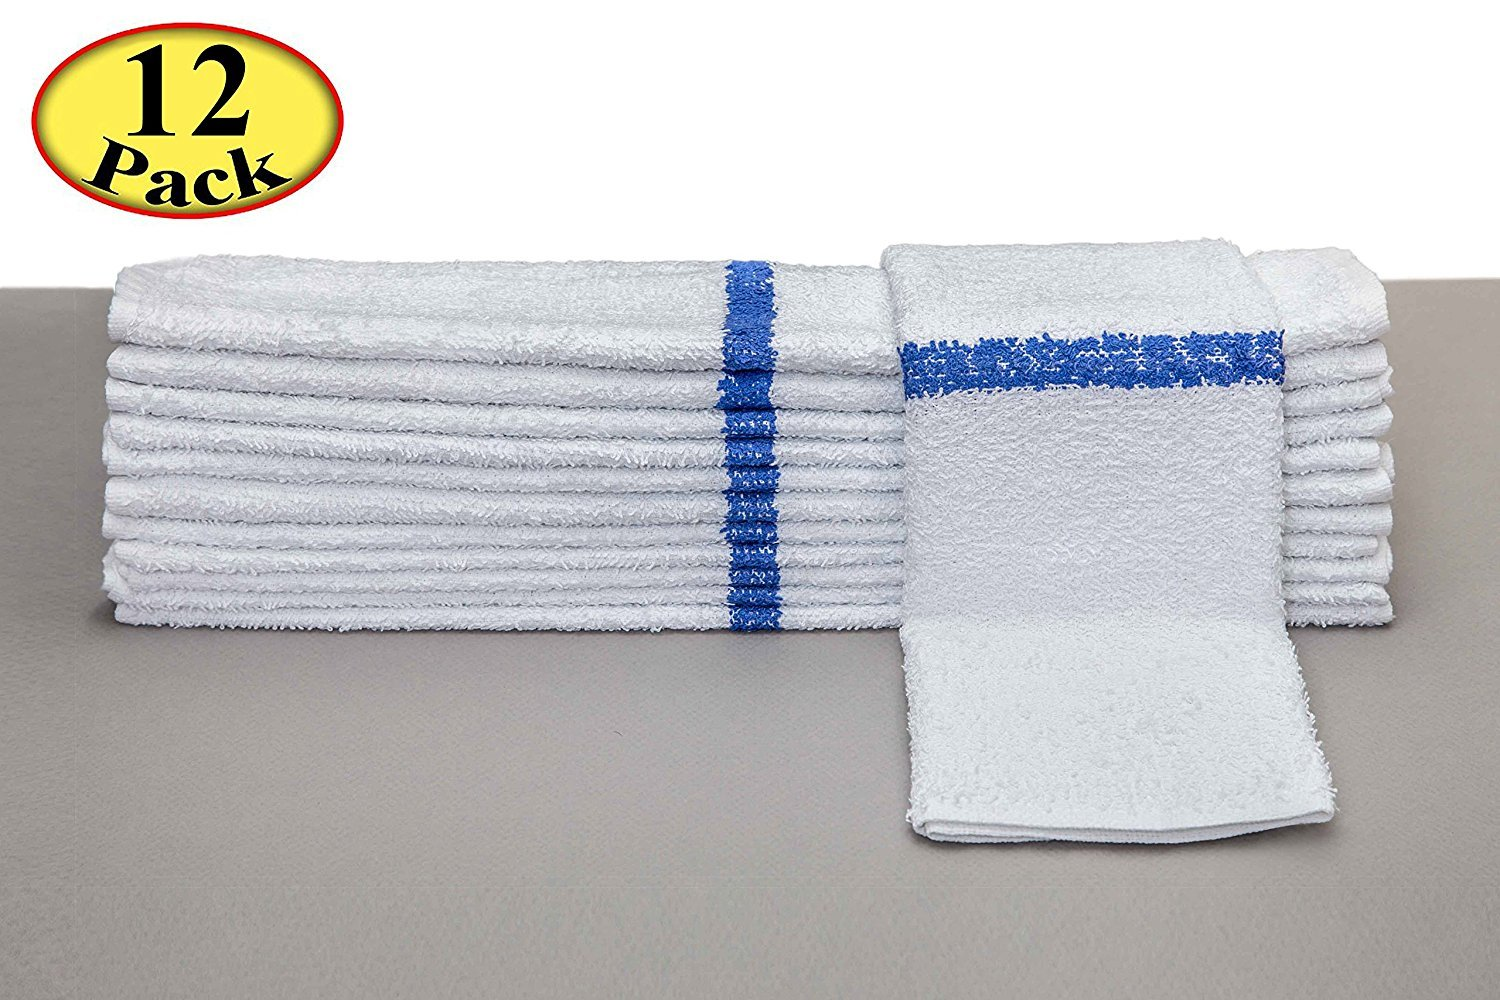 Bar Mop Cleaning Towels (12 Pack, 16 x 19 Inch) – Cotton Terry, White with Blue Stripe by FAM Textile